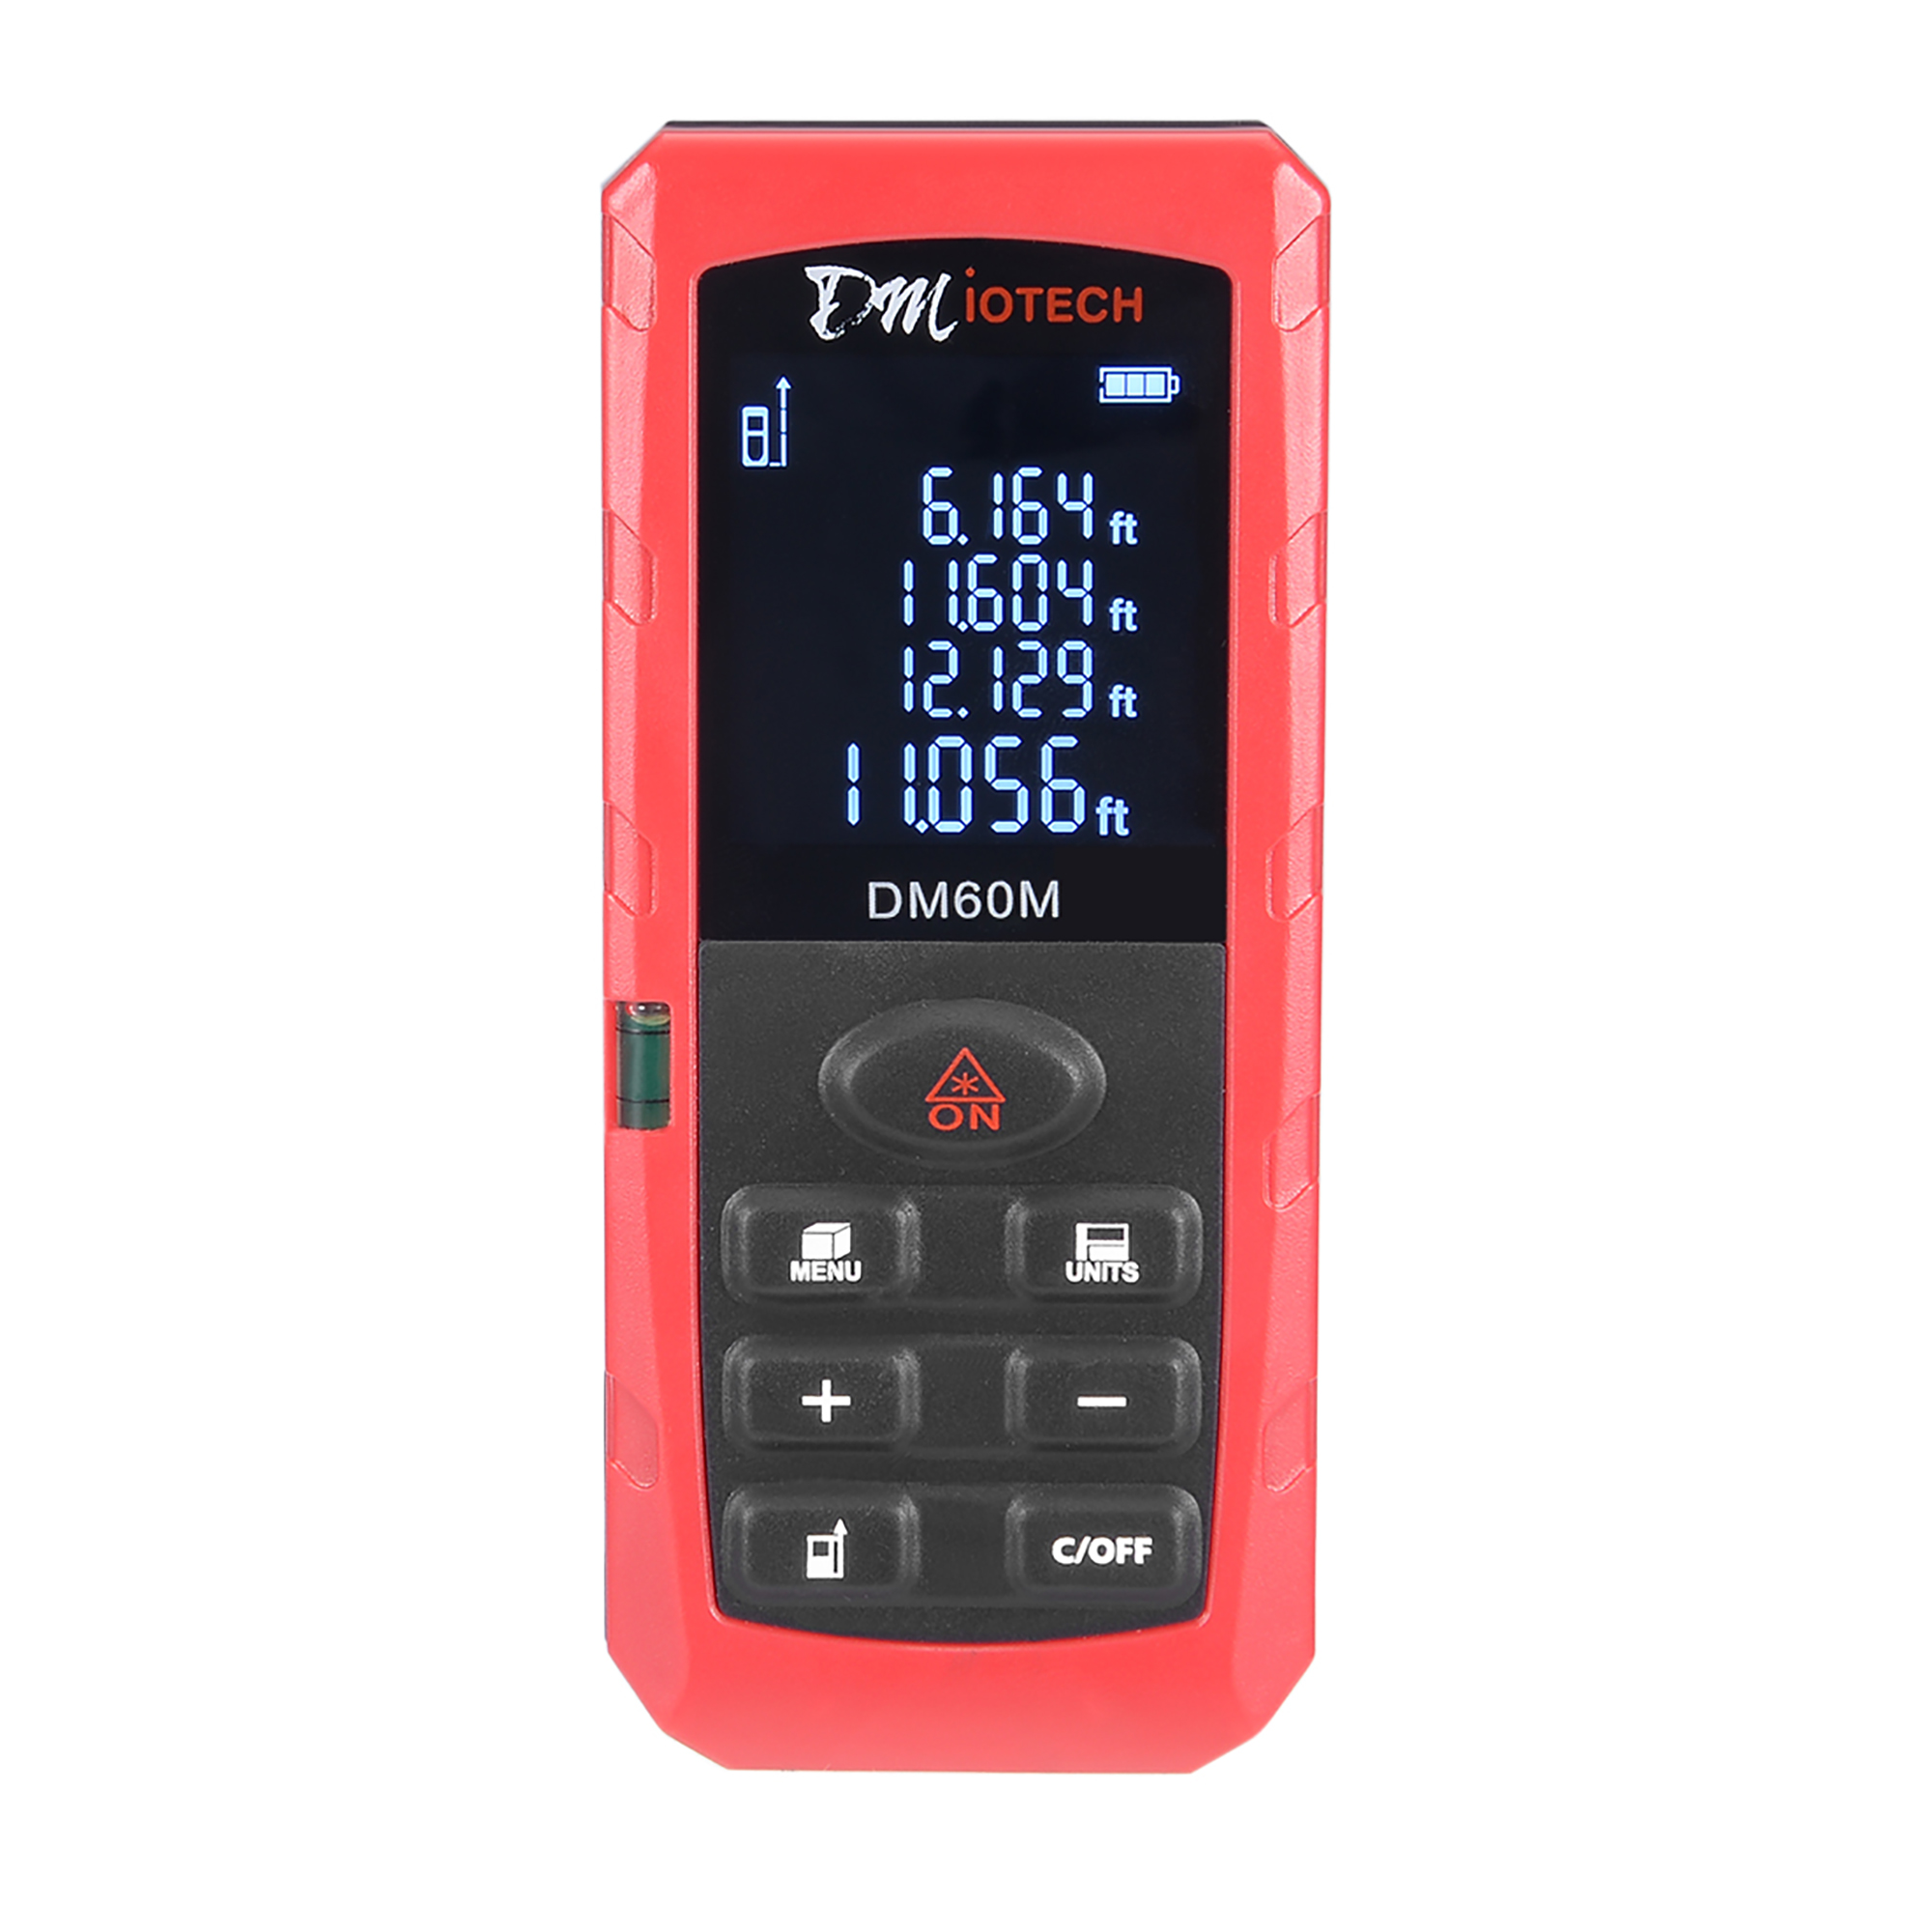 196ft Laser Distance Measure Handheld Digital Rangefinder Measurer Tape